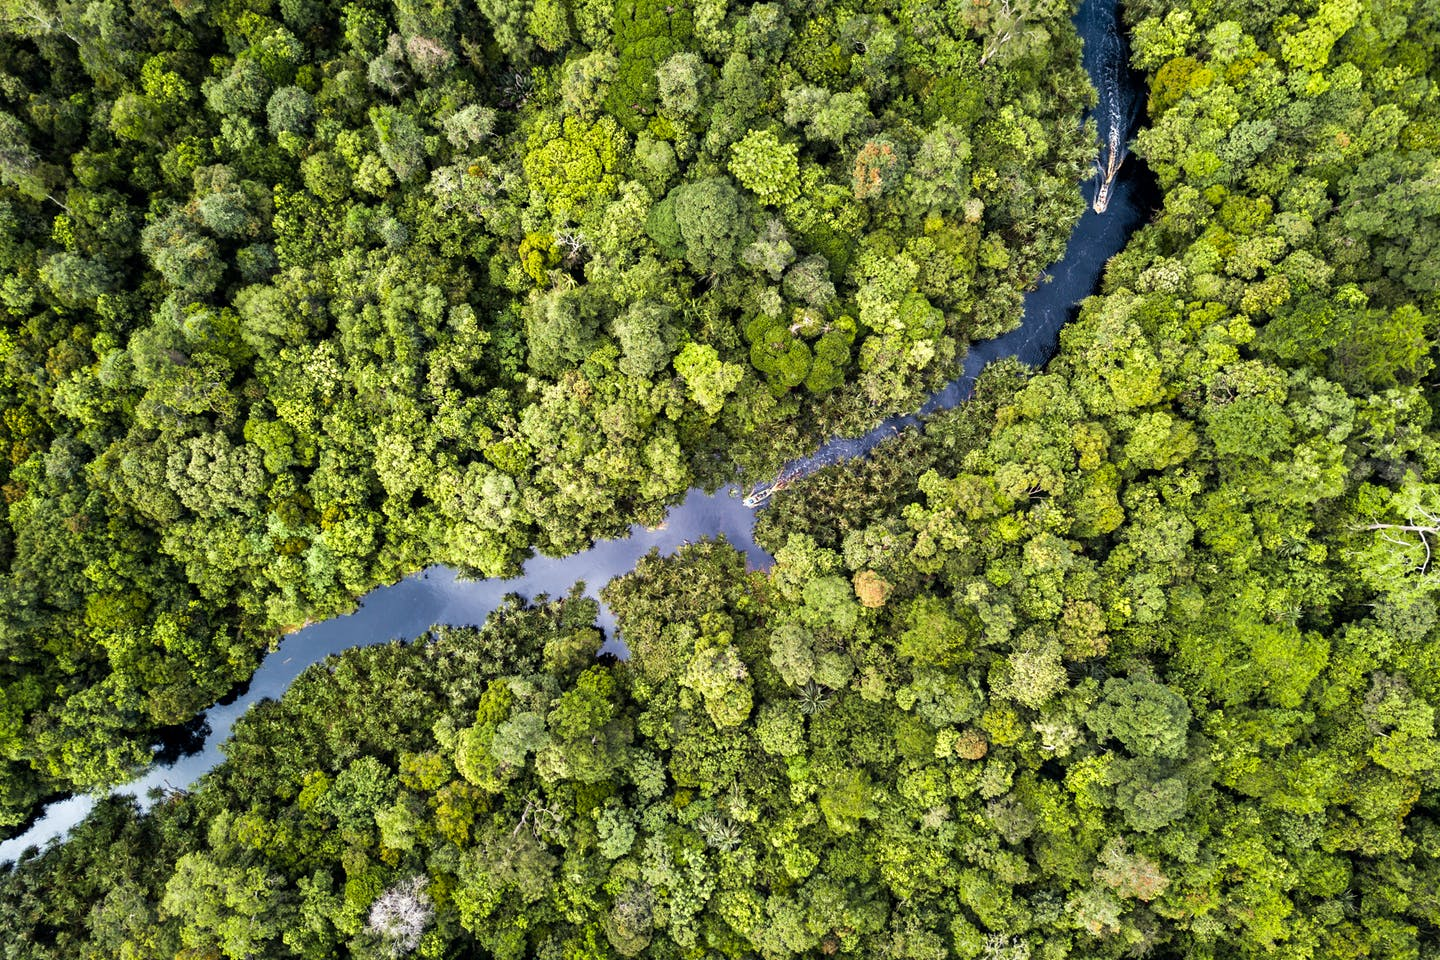 An aerial view of a river in Riau Province where APRIL is restoring 150,000 ha of degraded peat forest